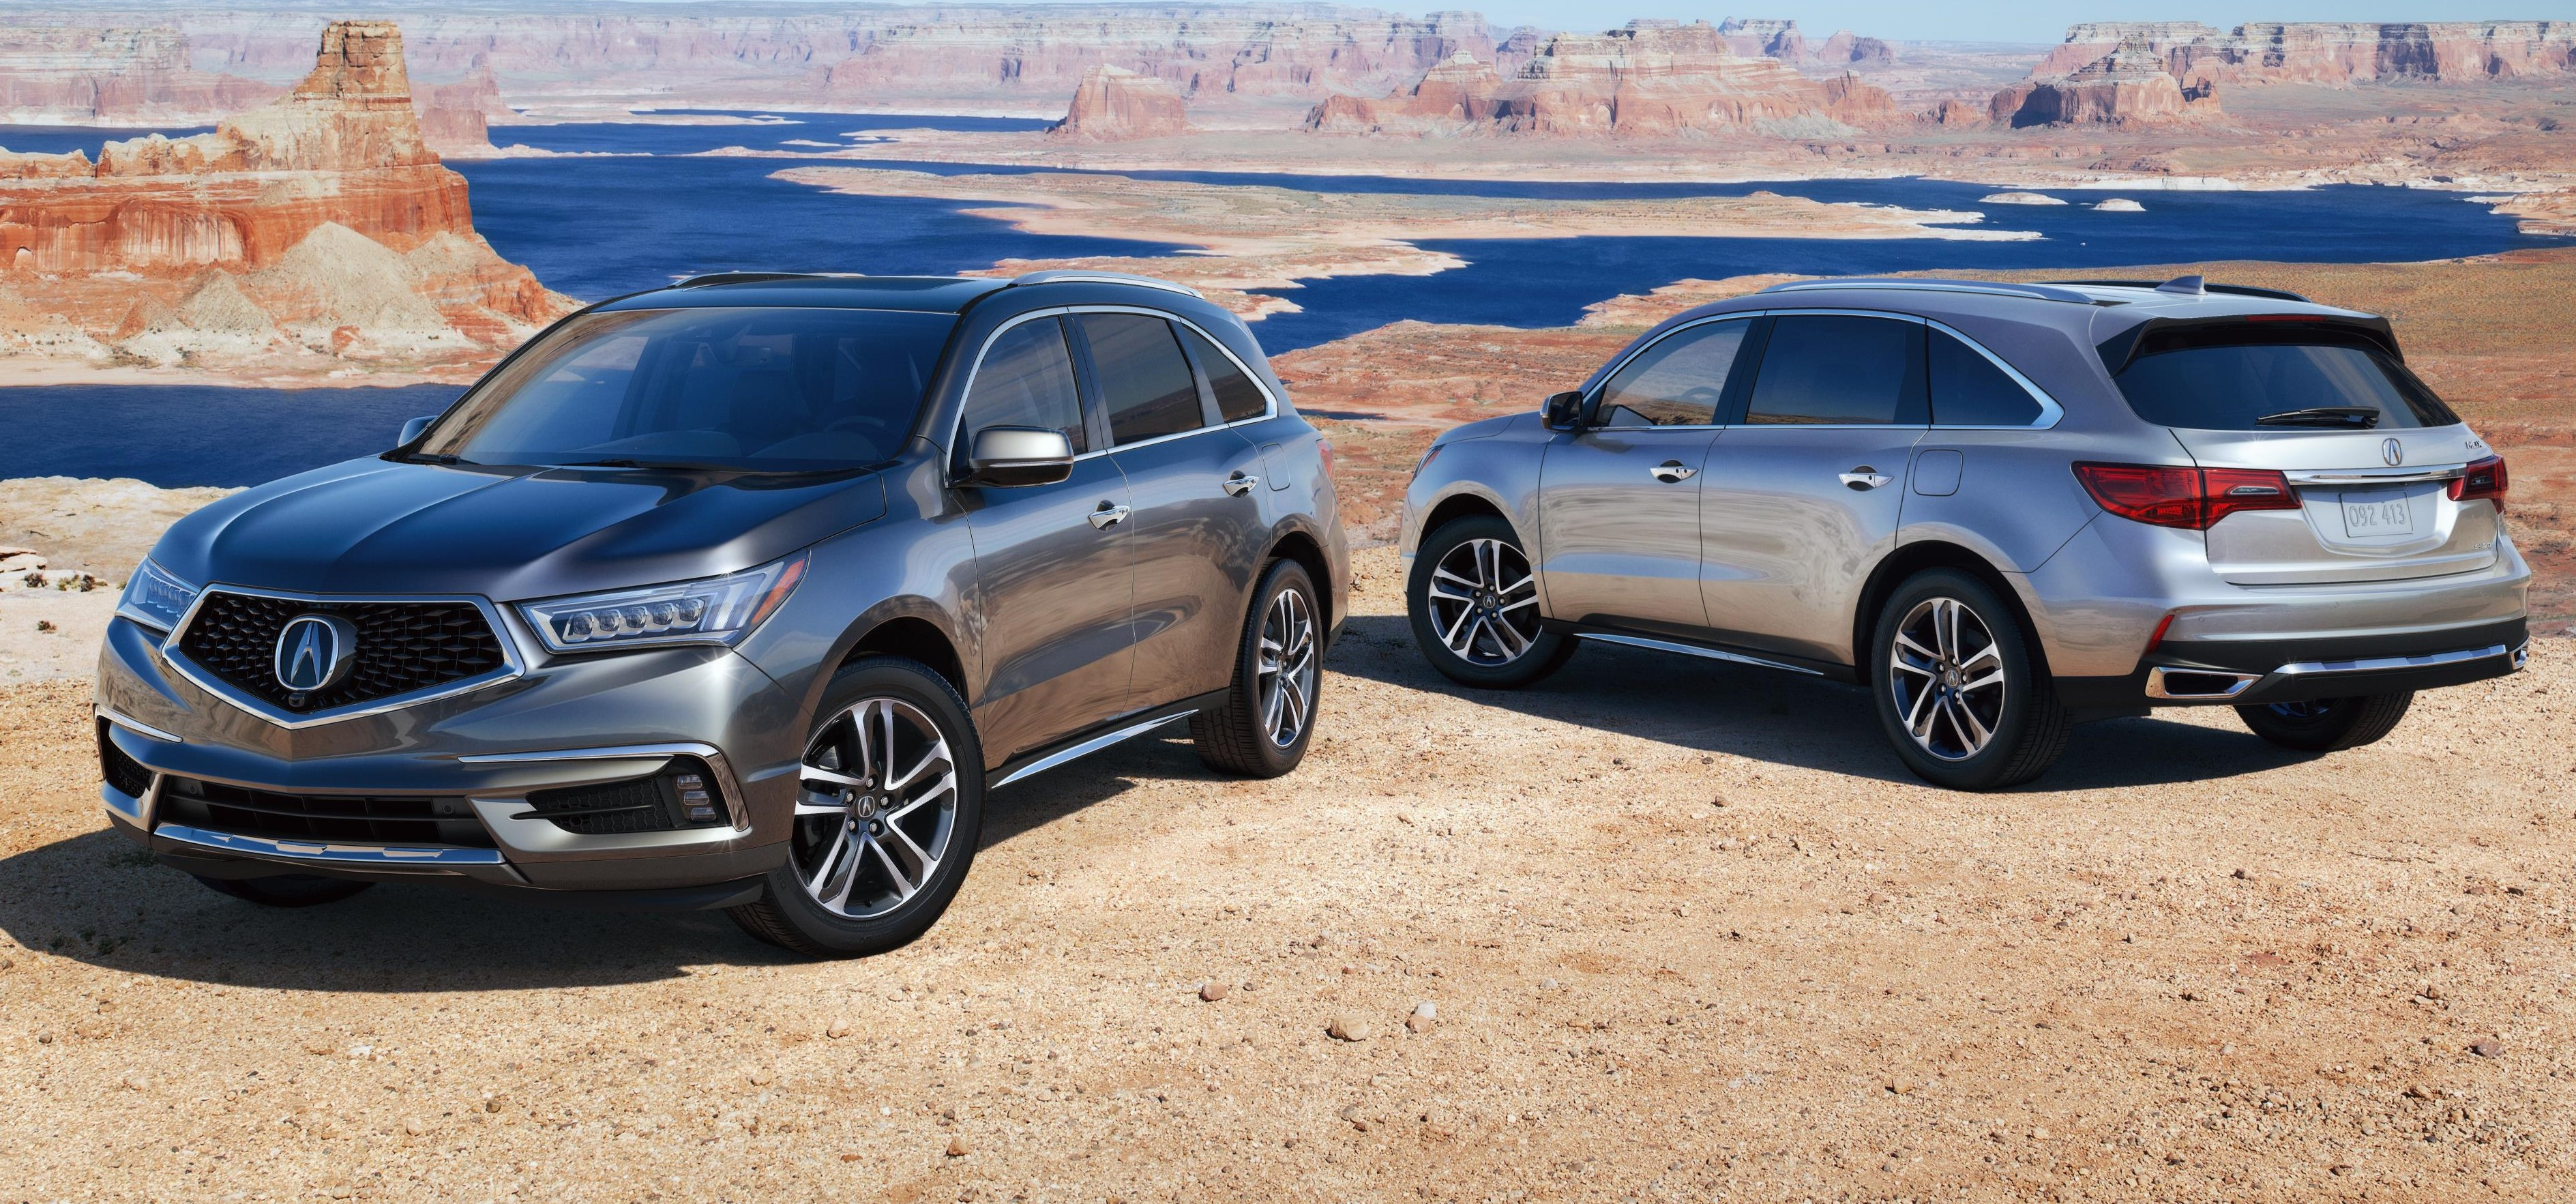 2017 acura mdx launches with bold new styling. Black Bedroom Furniture Sets. Home Design Ideas